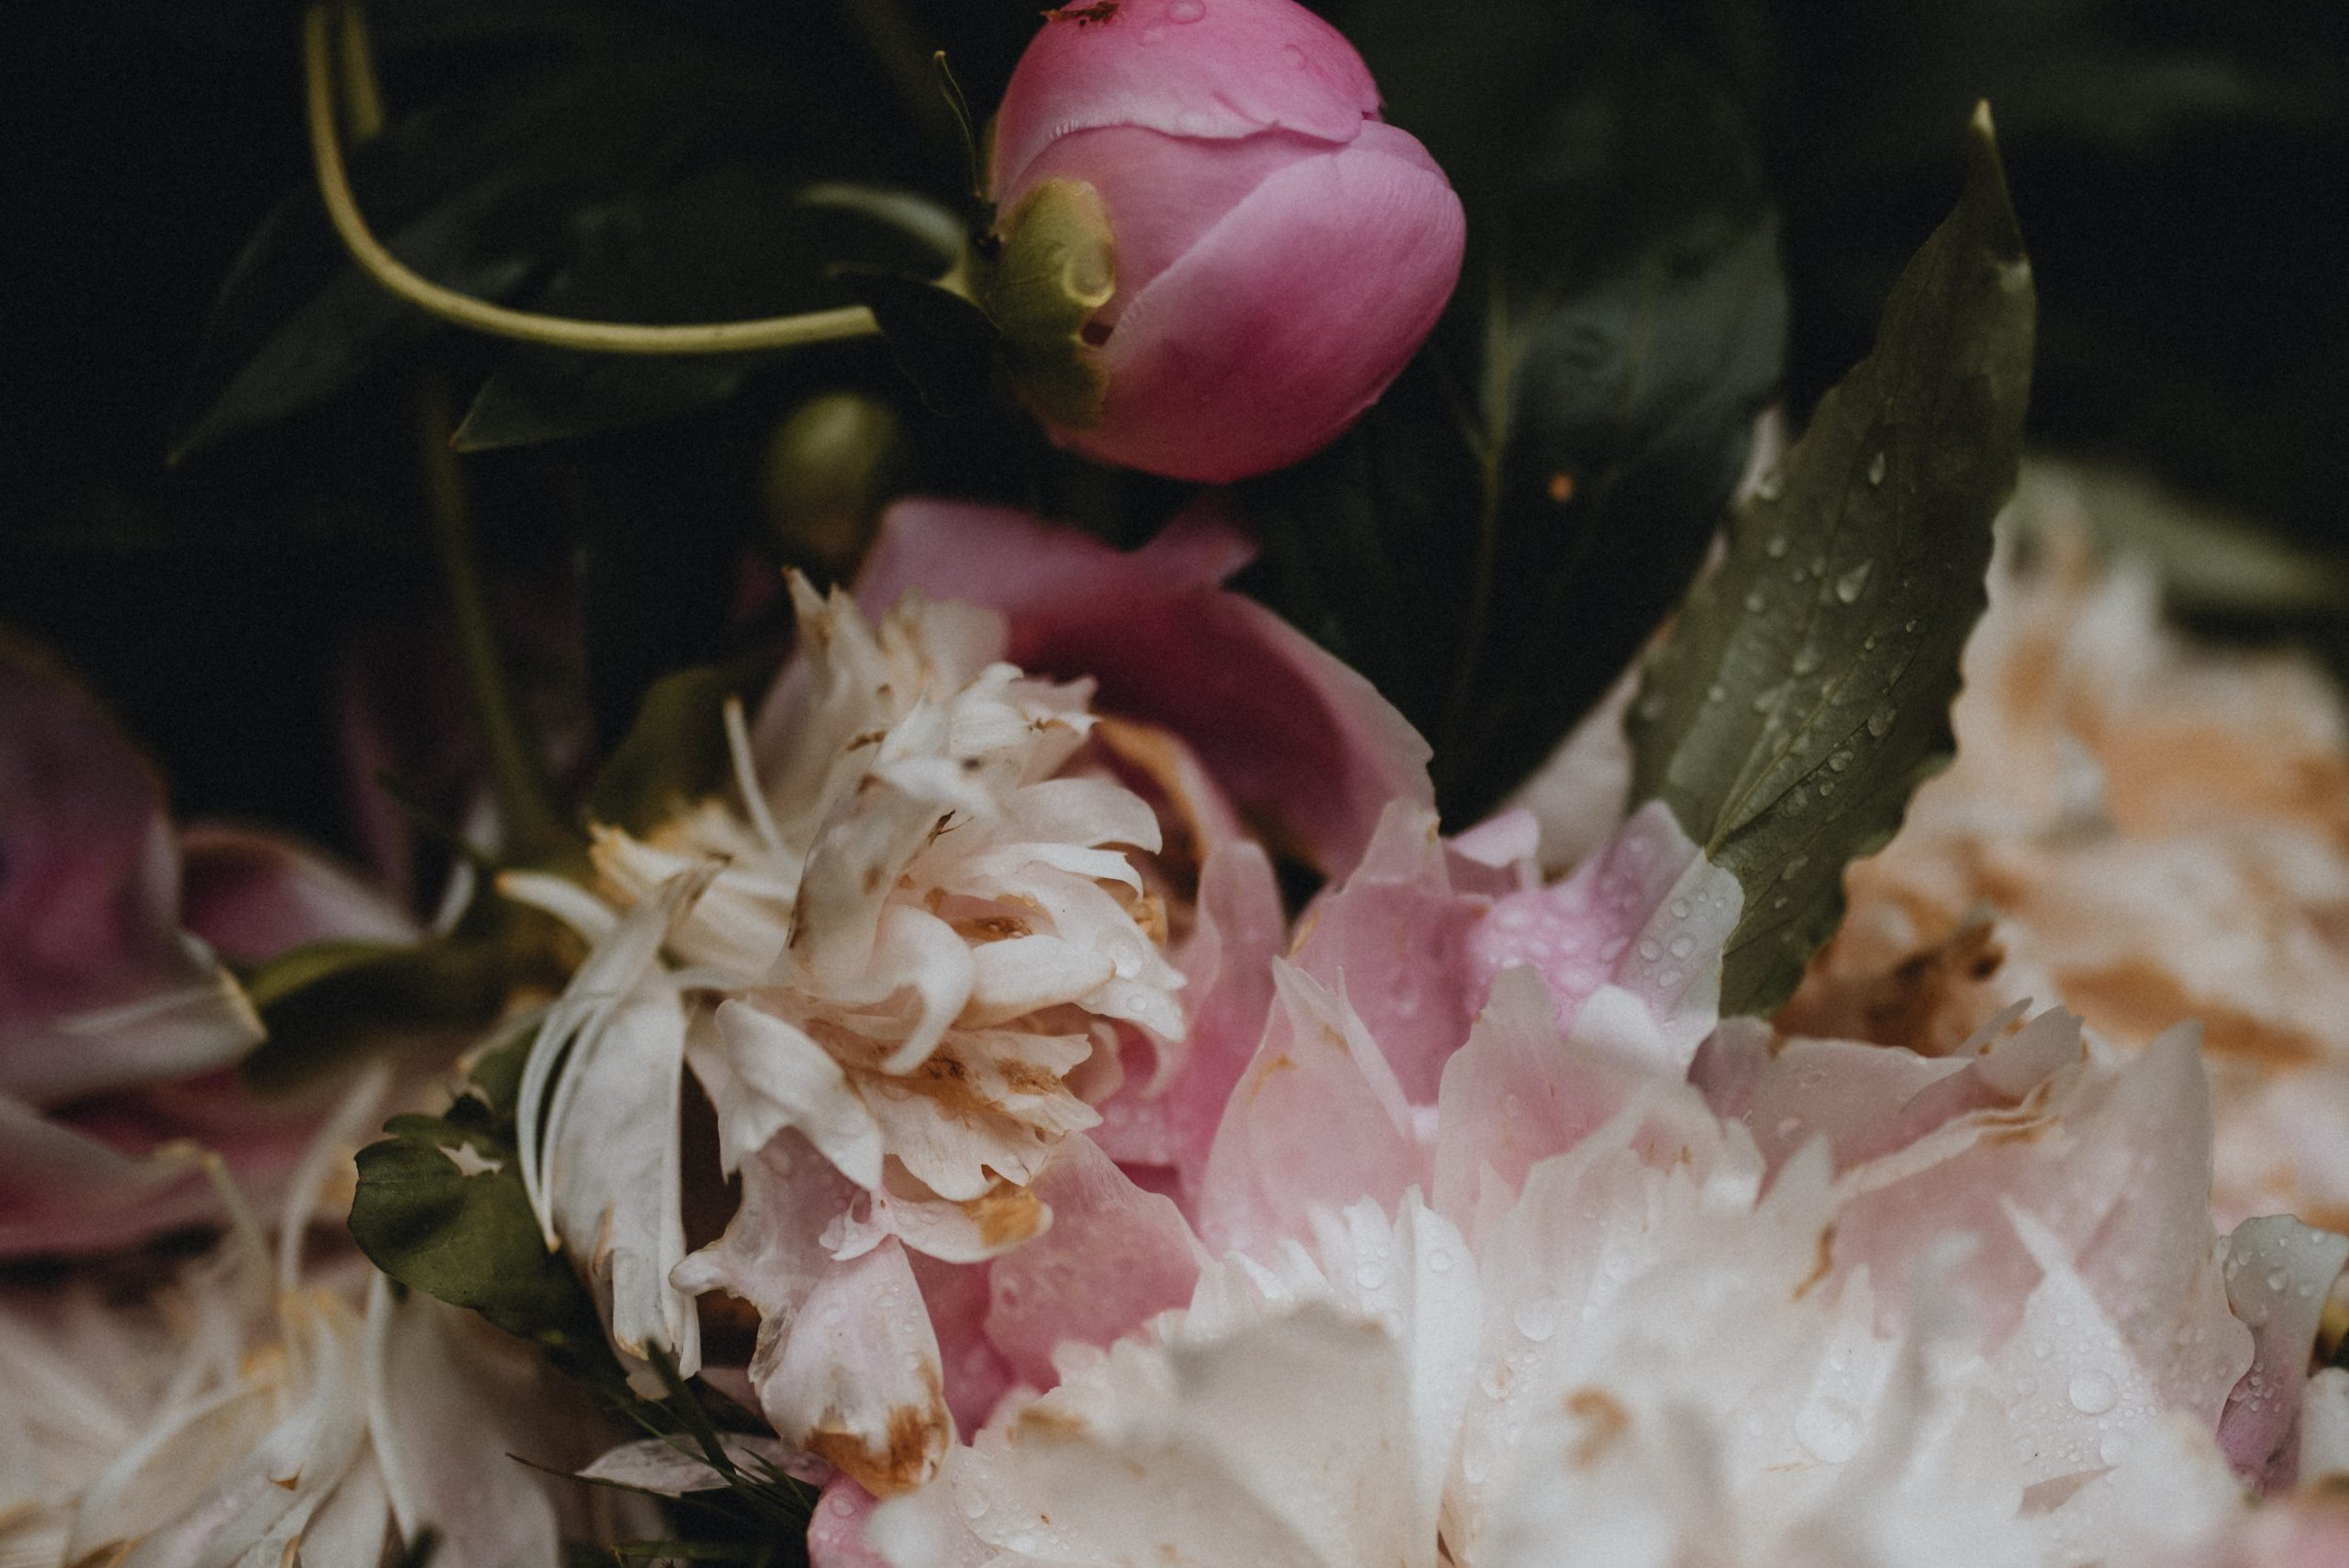 Dying pink peonies covered in raindrops